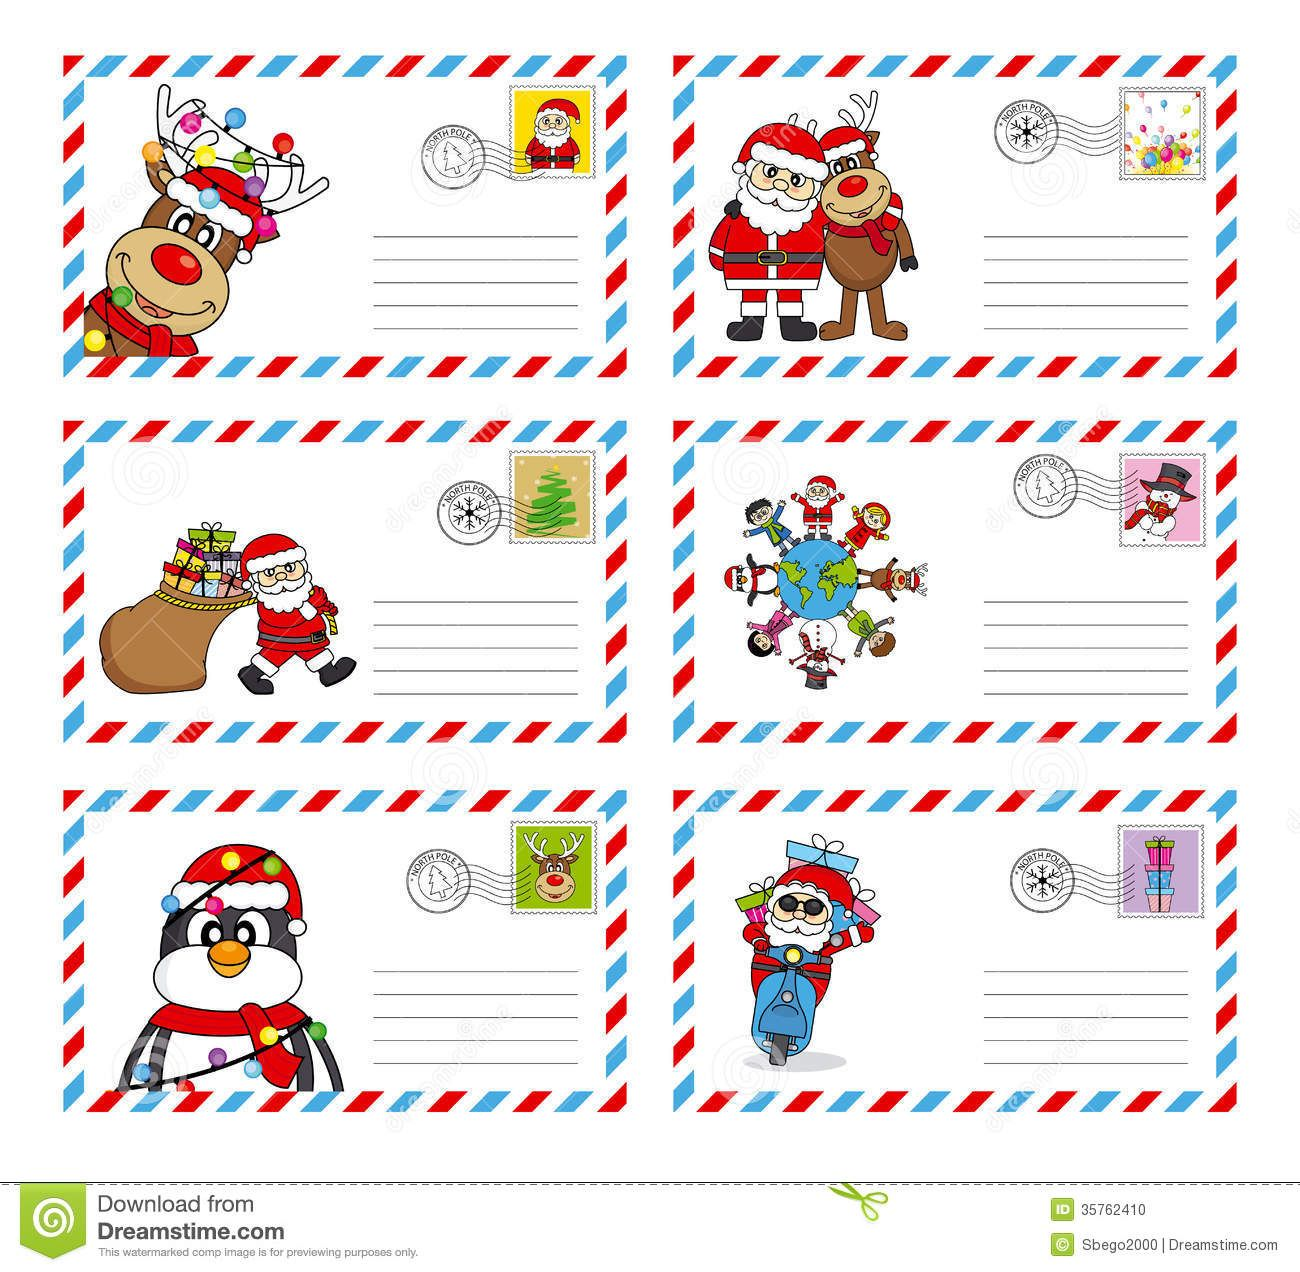 Letters From Santa Claus Template | dear Santa letters | Pinterest ...